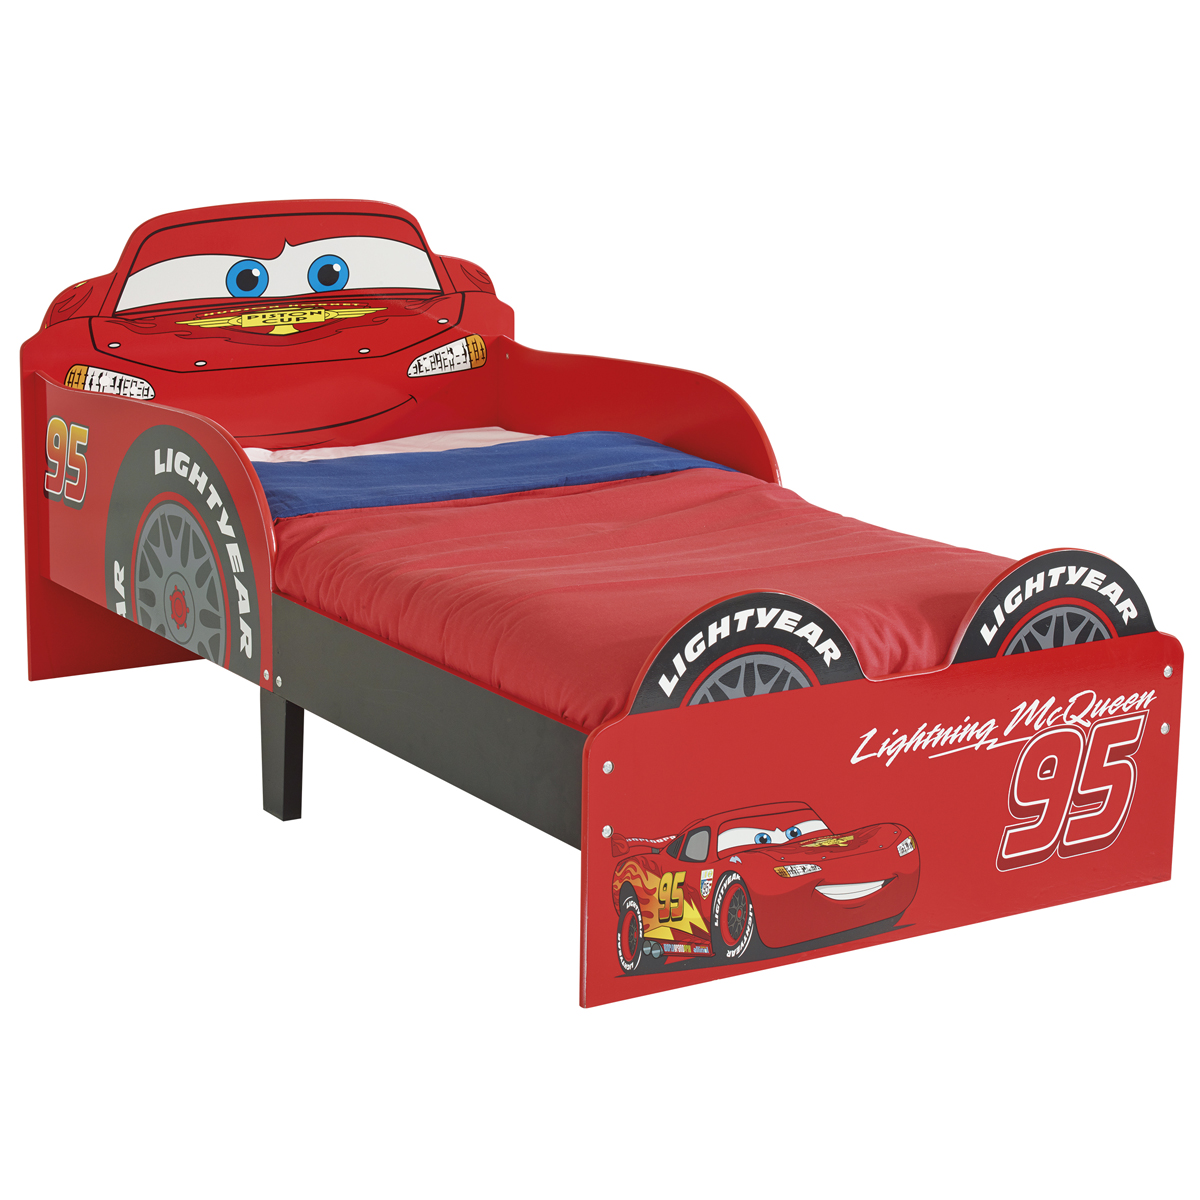 disney cars lightning mcqueen 95 junior bed ebay. Black Bedroom Furniture Sets. Home Design Ideas